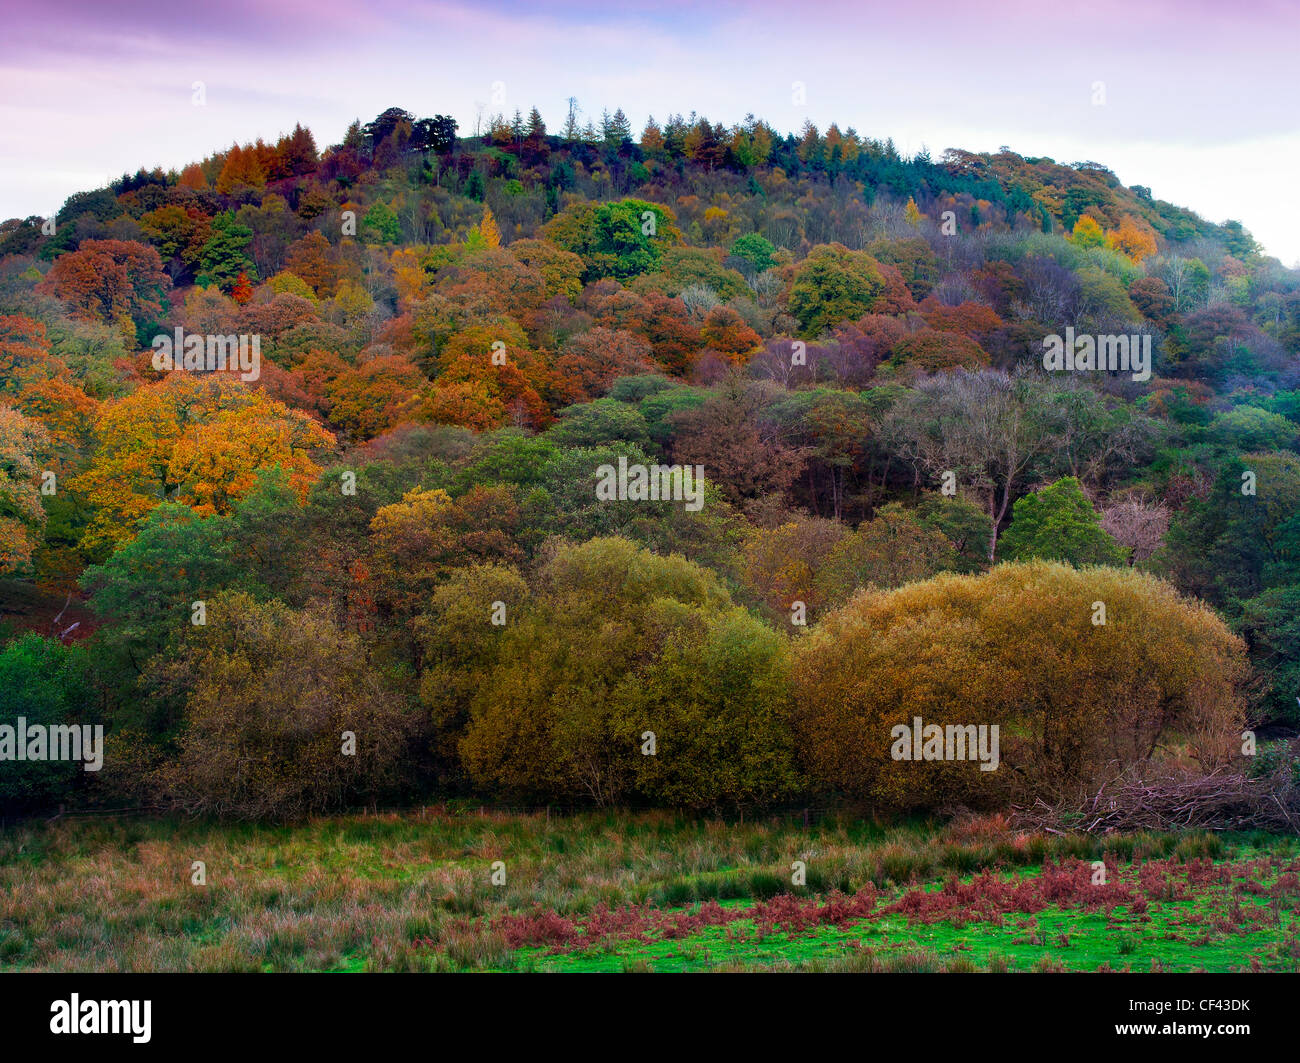 A colourful autumnal display from trees on Beddugre Hill. - Stock Image